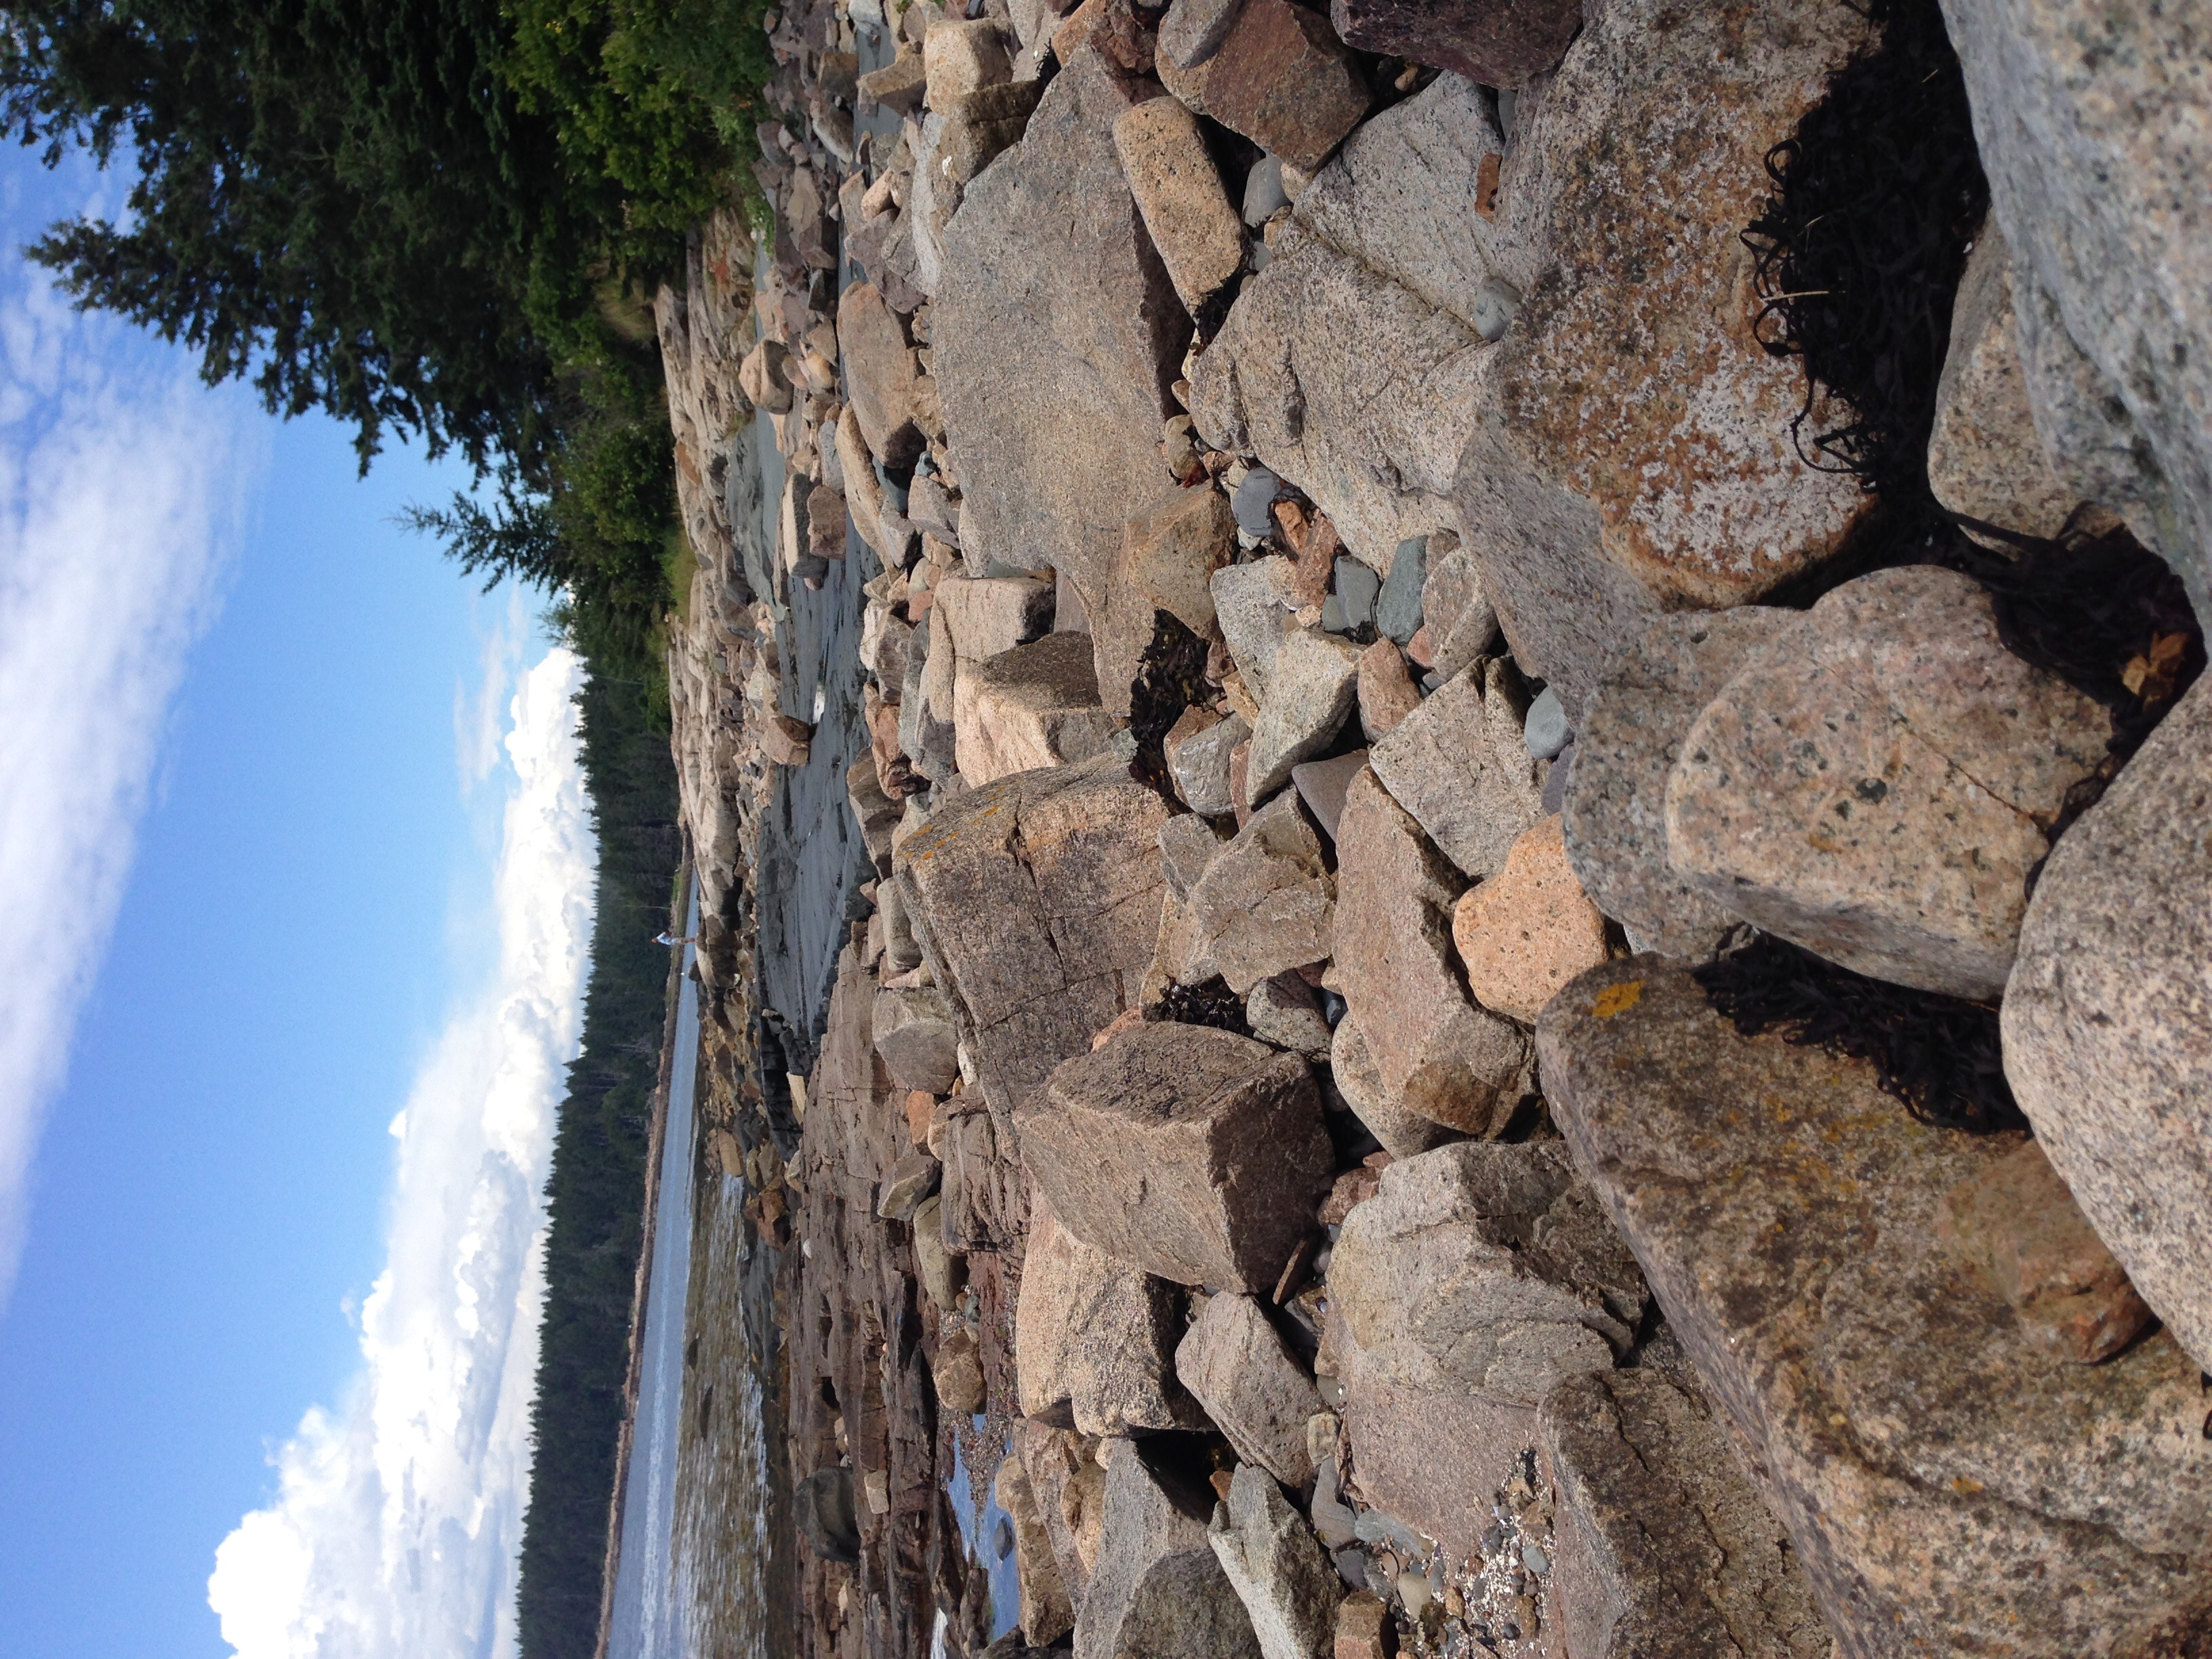 Large boulders and panoramic views on Frazer point. Wandering on the boulders here is safer in the relatively protected entrance to Winter Harbor than further in the park on Schoodic Point.